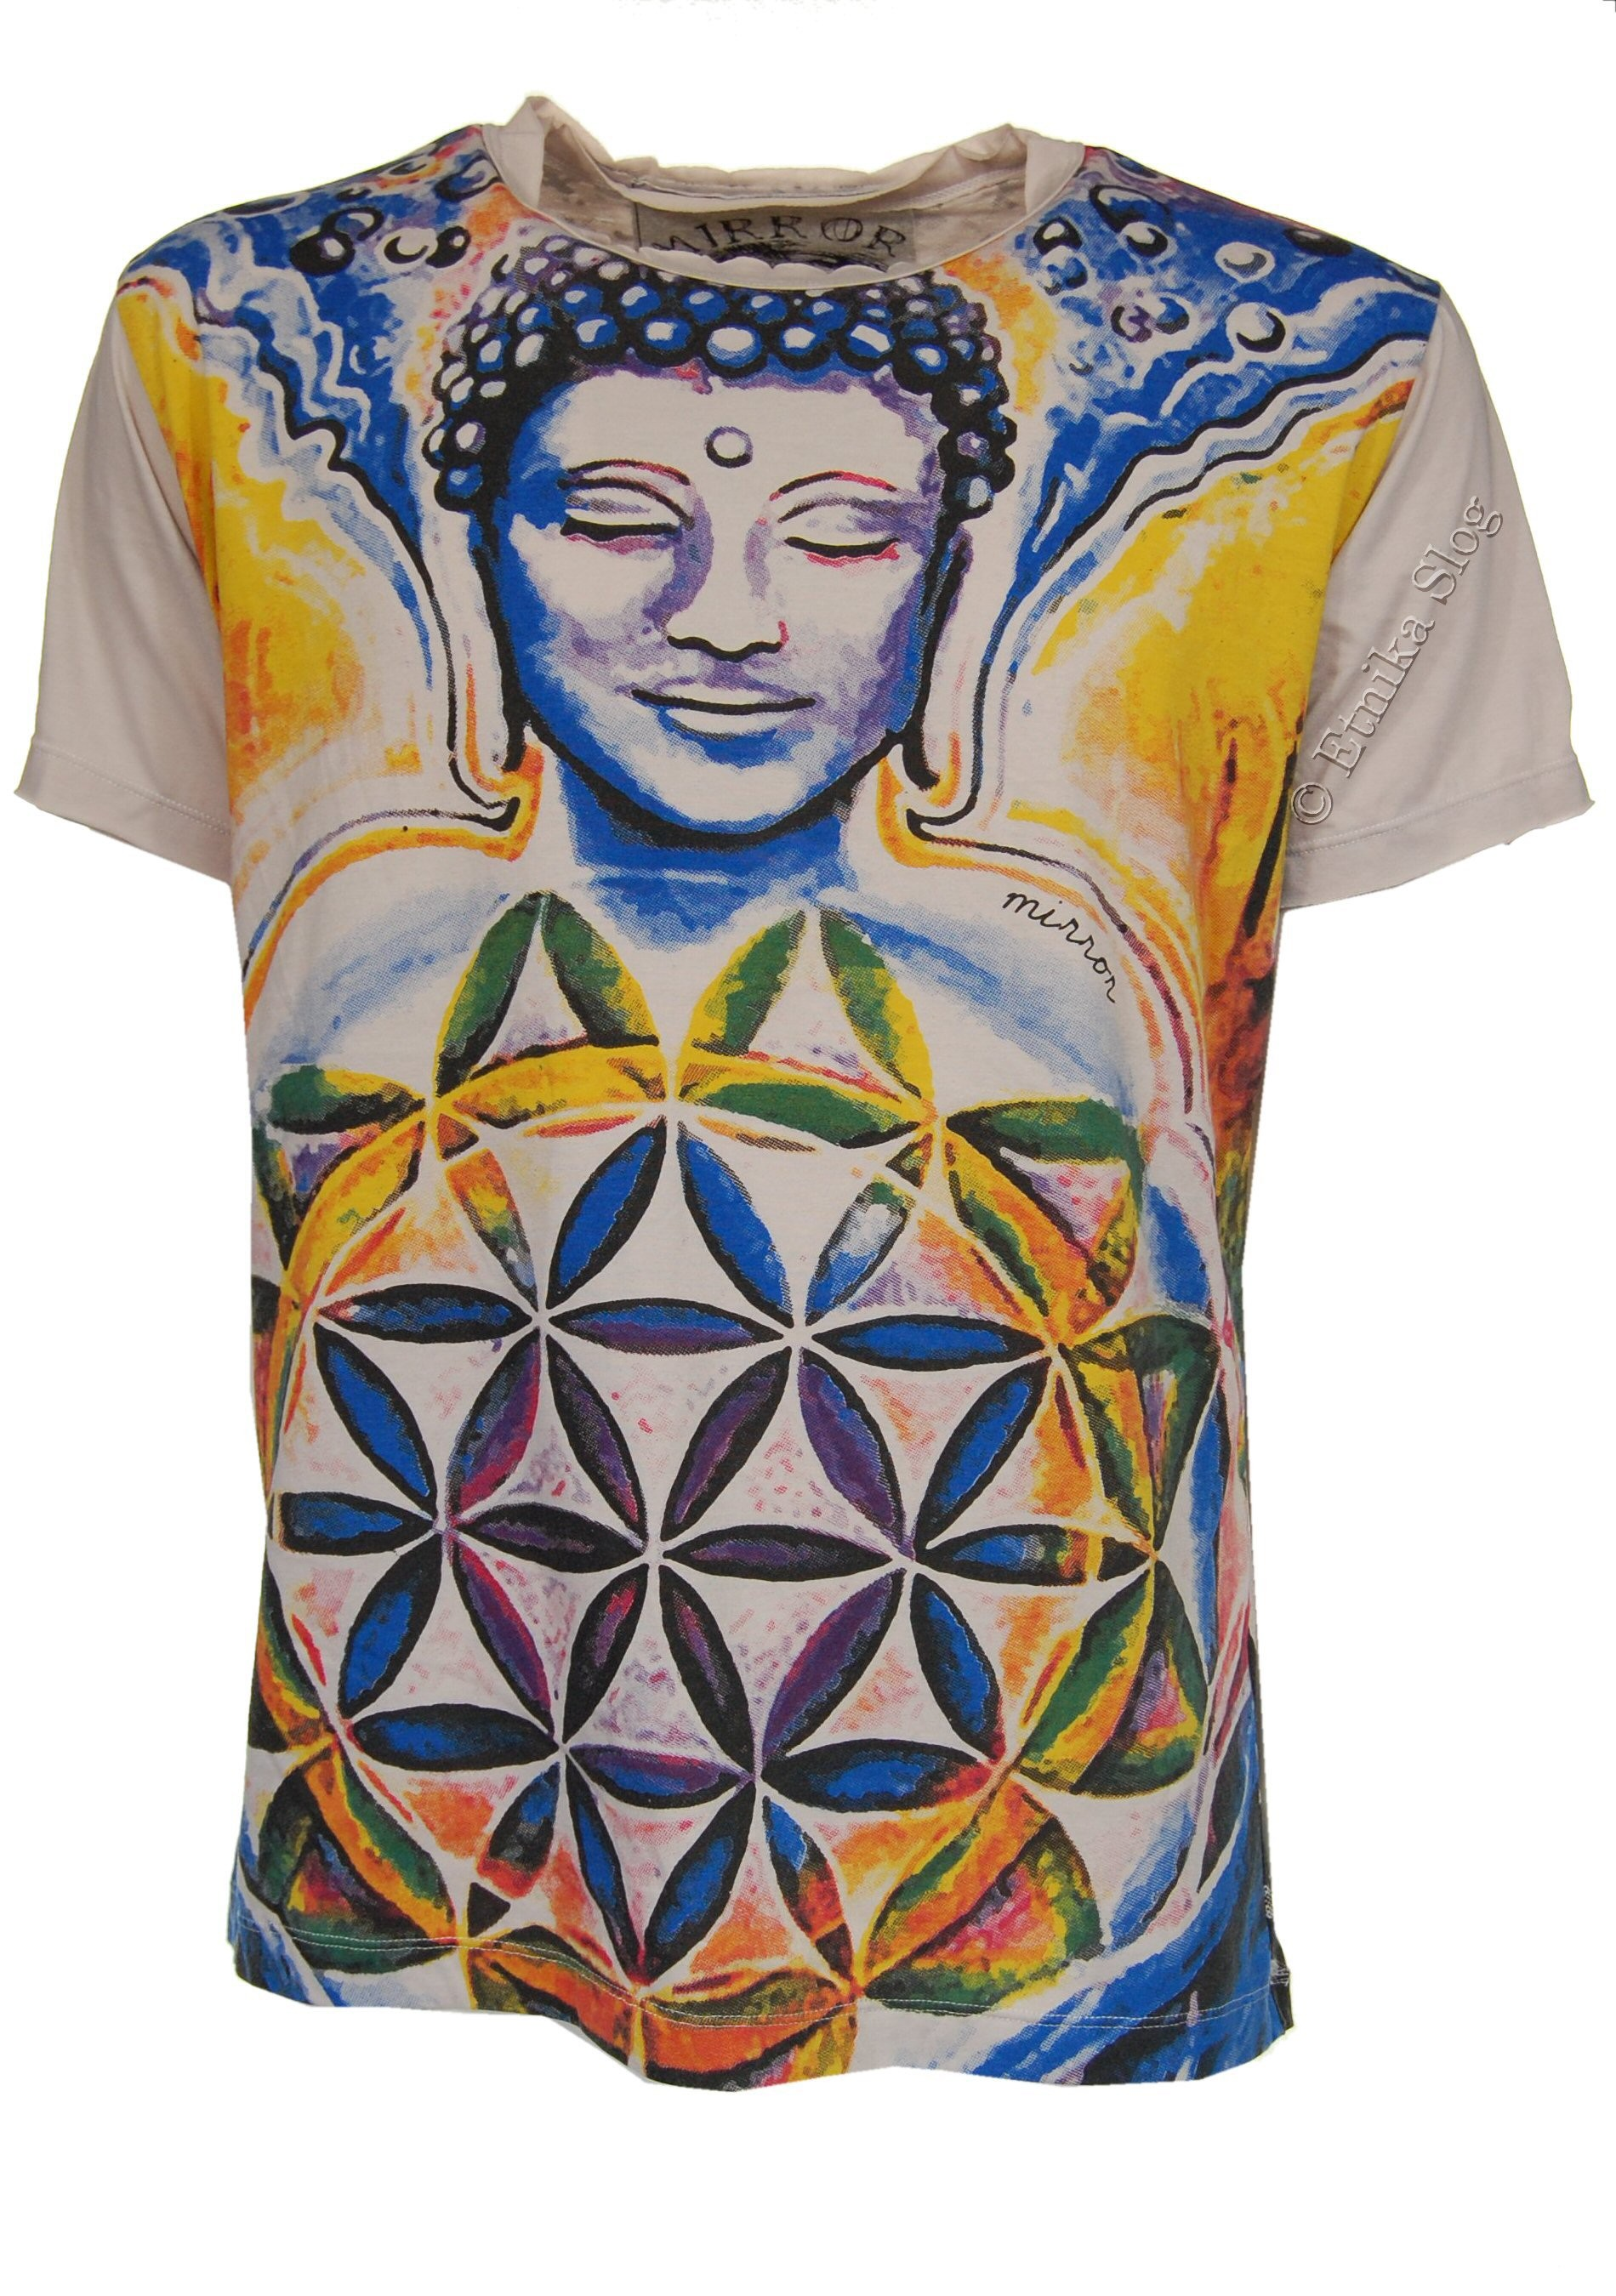 MEN'S T-SHIRTS AB-THM07-37 - Oriente Import S.r.l.